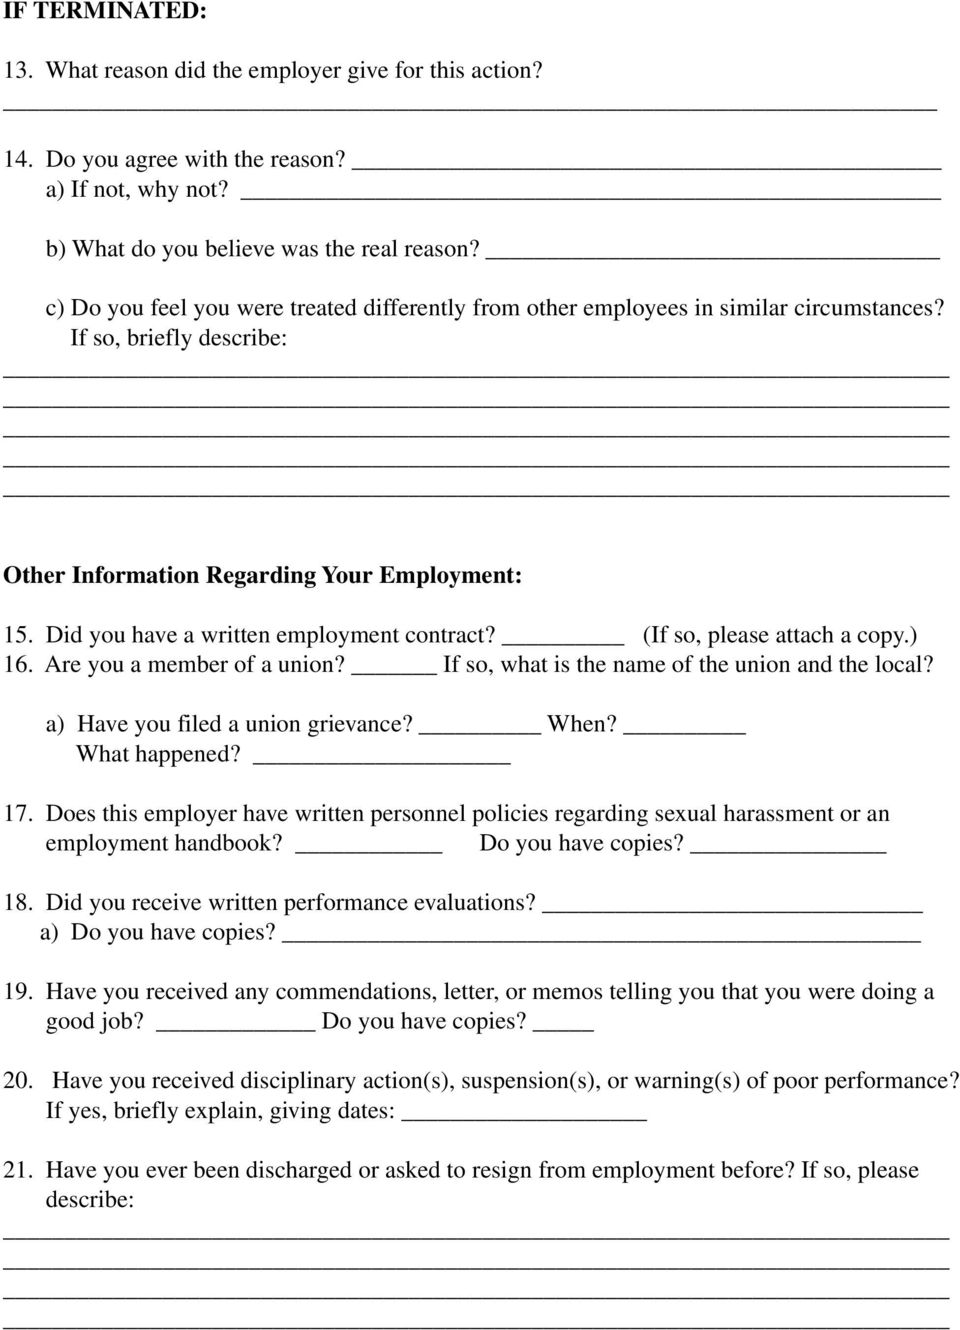 Did you have a written employment contract? (If so, please attach a copy.) 16. Are you a member of a union? If so, what is the name of the union and the local? a) Have you filed a union grievance?